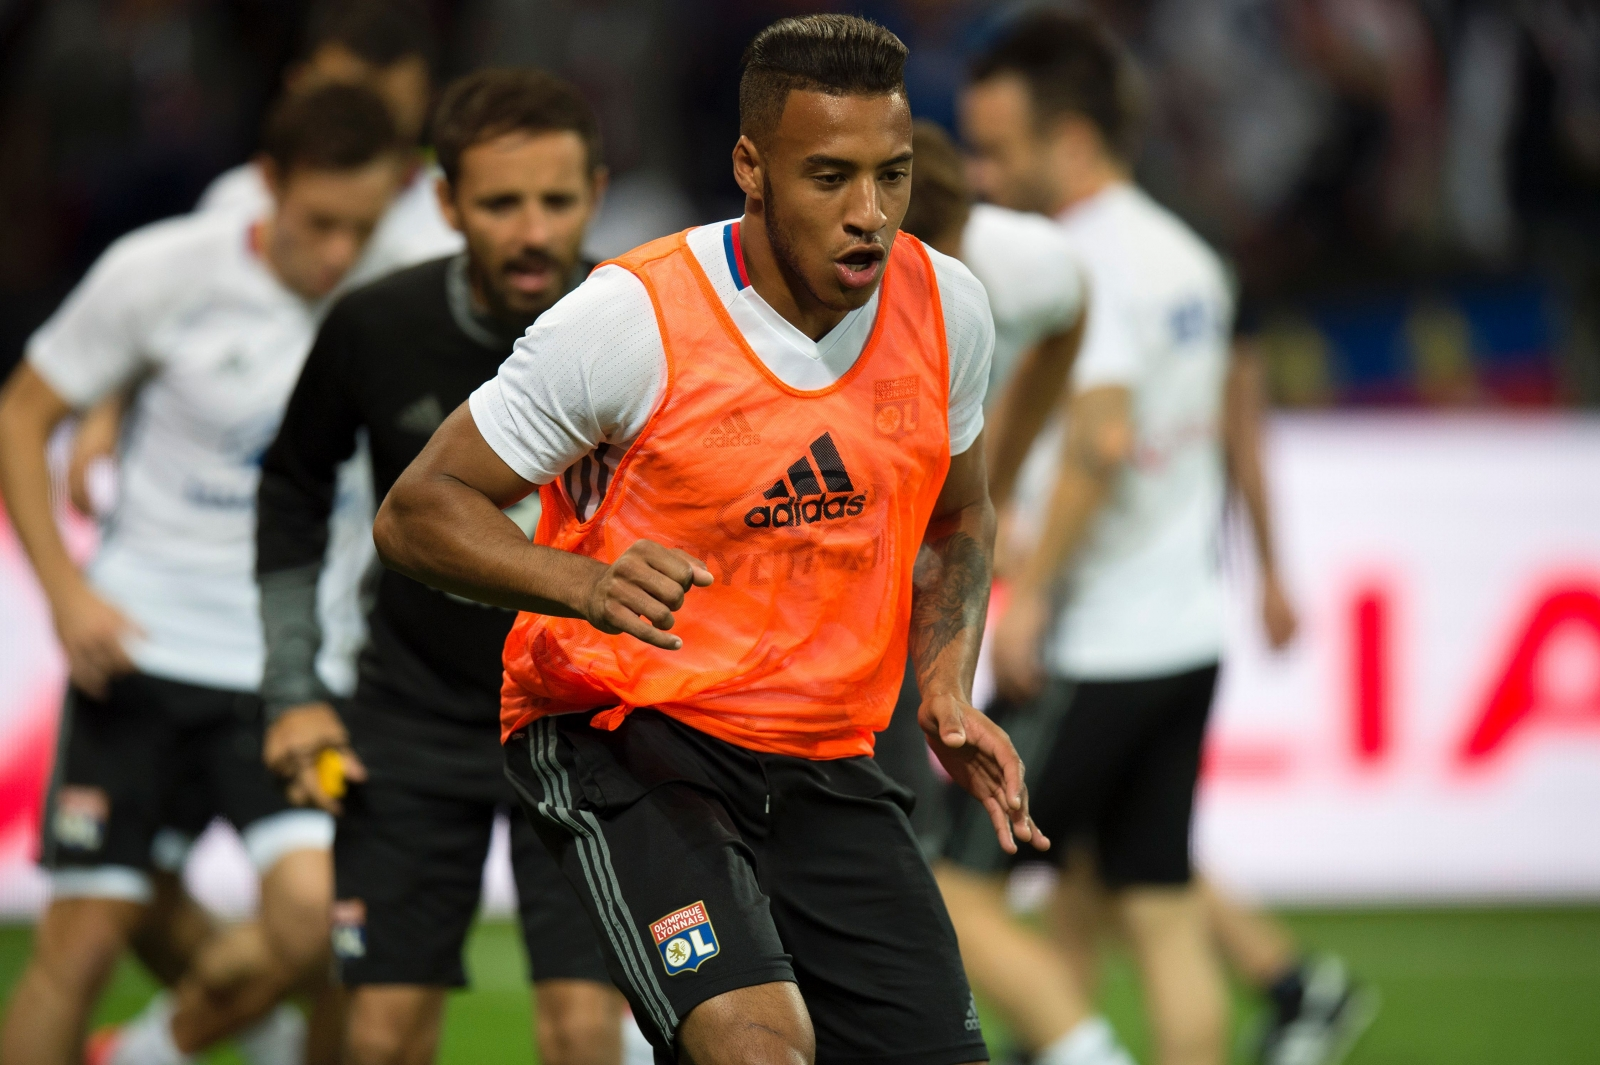 Ligue 1: Tolisso reveals Lyon exit dreams